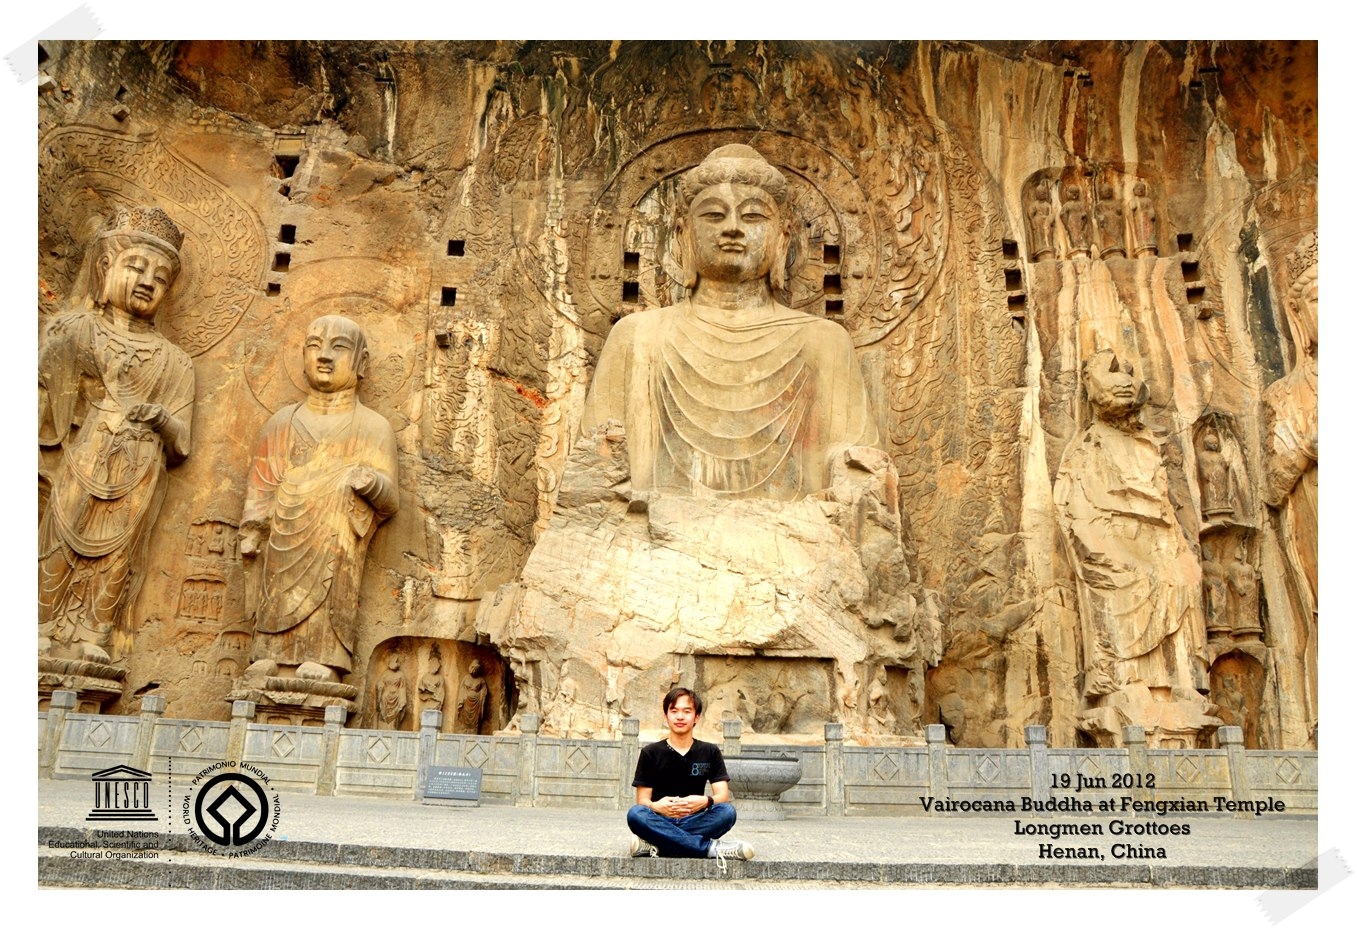 The Giant Buddha Longmen Grottoes - China Thomas shaw